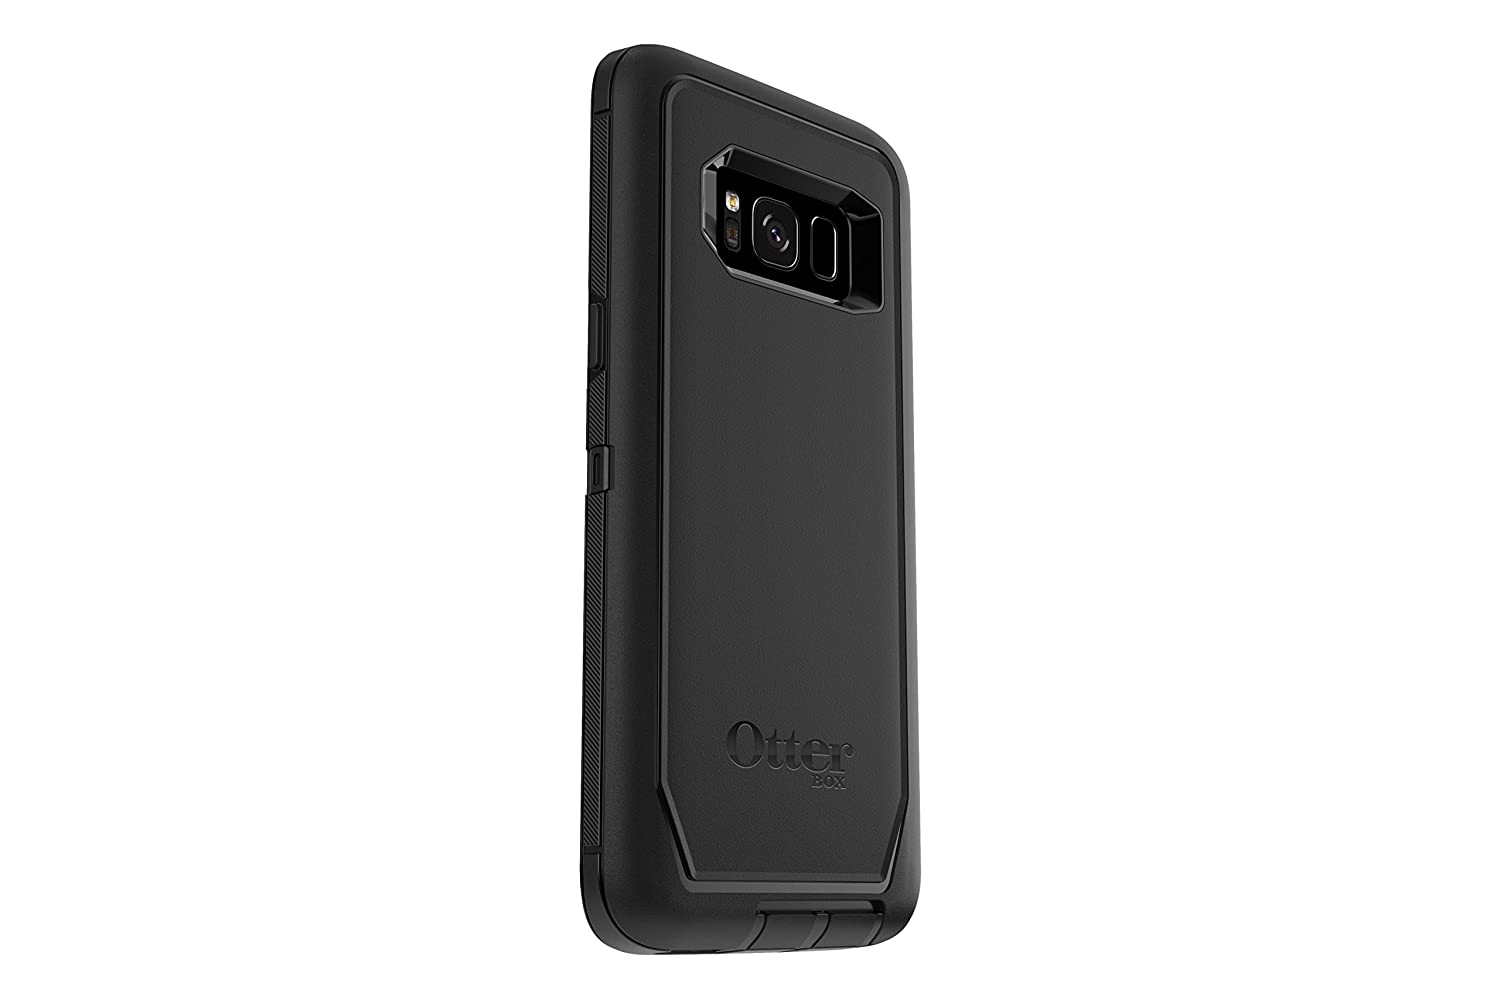 dbdd1b9f88f Amazon.com  OtterBox DEFENDER SERIES SCREENLESS EDITION for Samsung Galaxy  S8 - Retail Packaging - BLACK  Cell Phones   Accessories